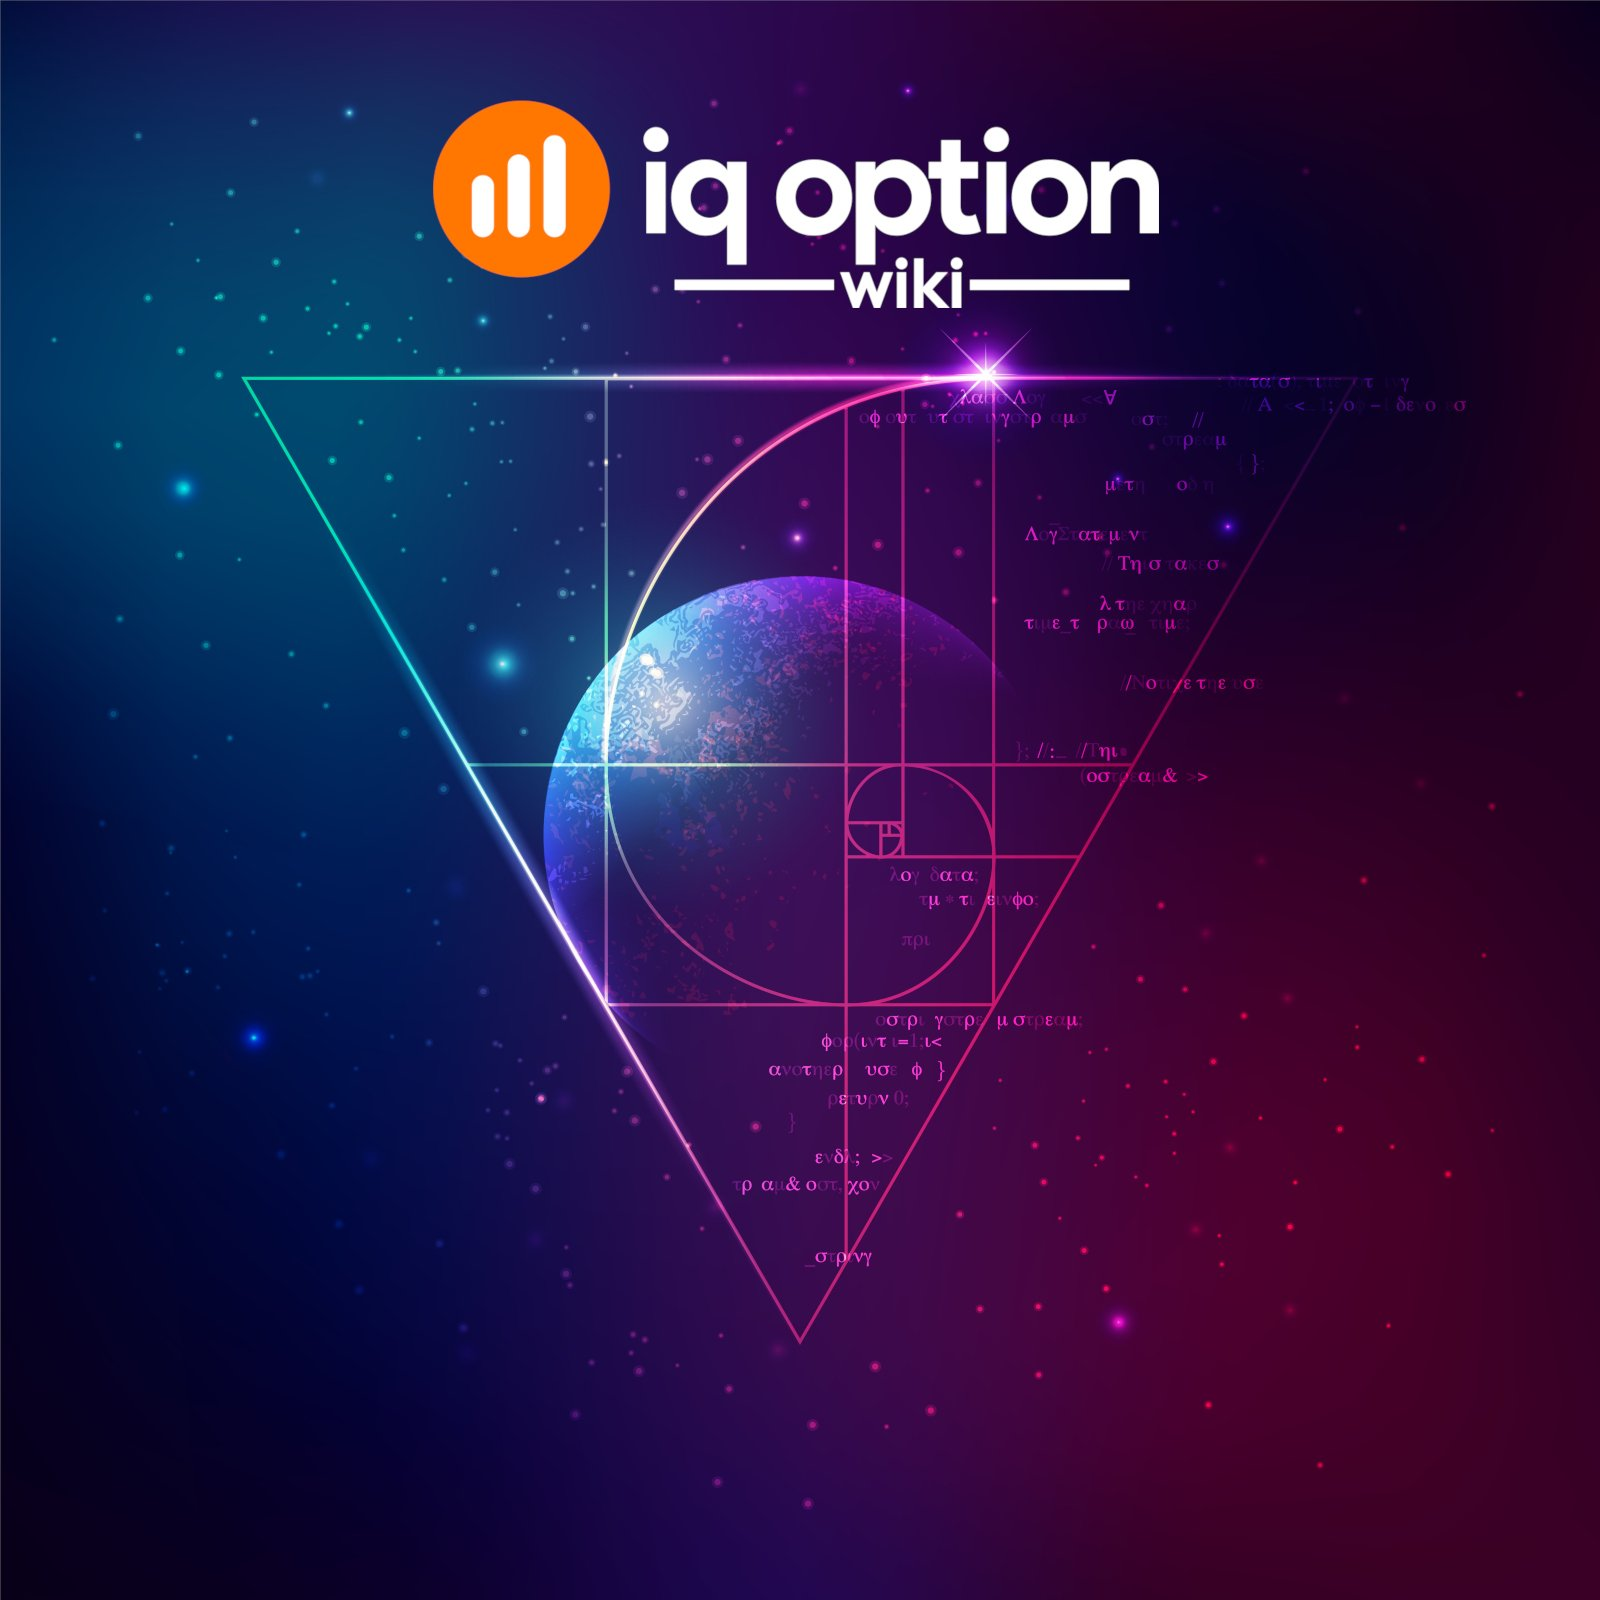 fibonacci tools at iq option